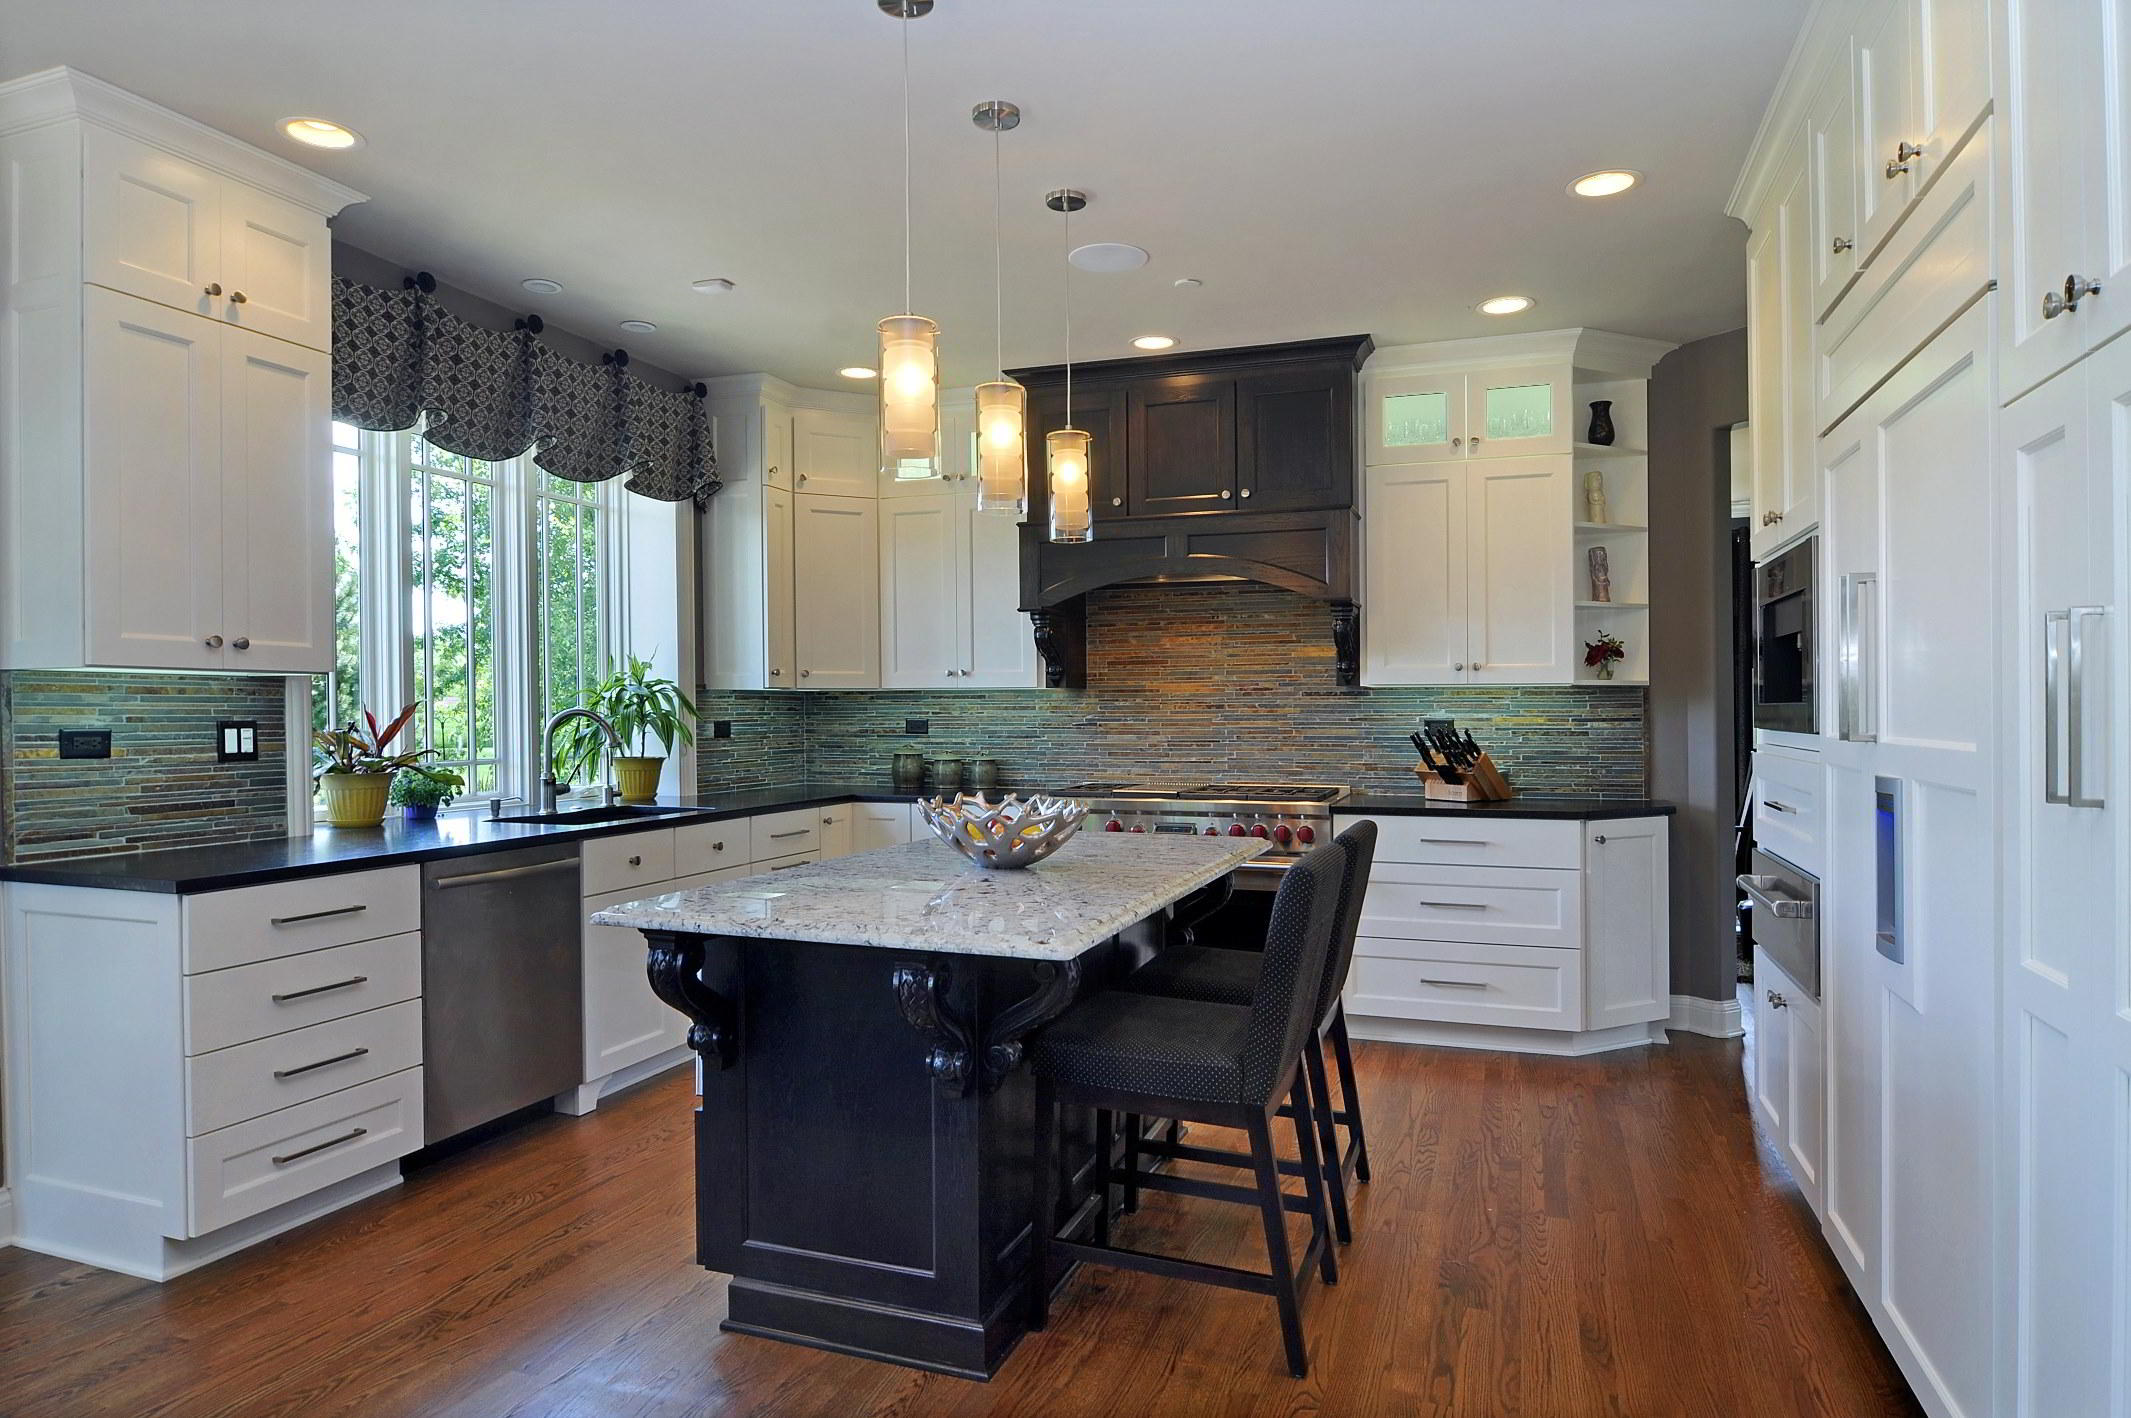 High Quality Custom Kitchen Design | Kitchen Design And Build | Kitchen Remodeling Long  Grove Illinois